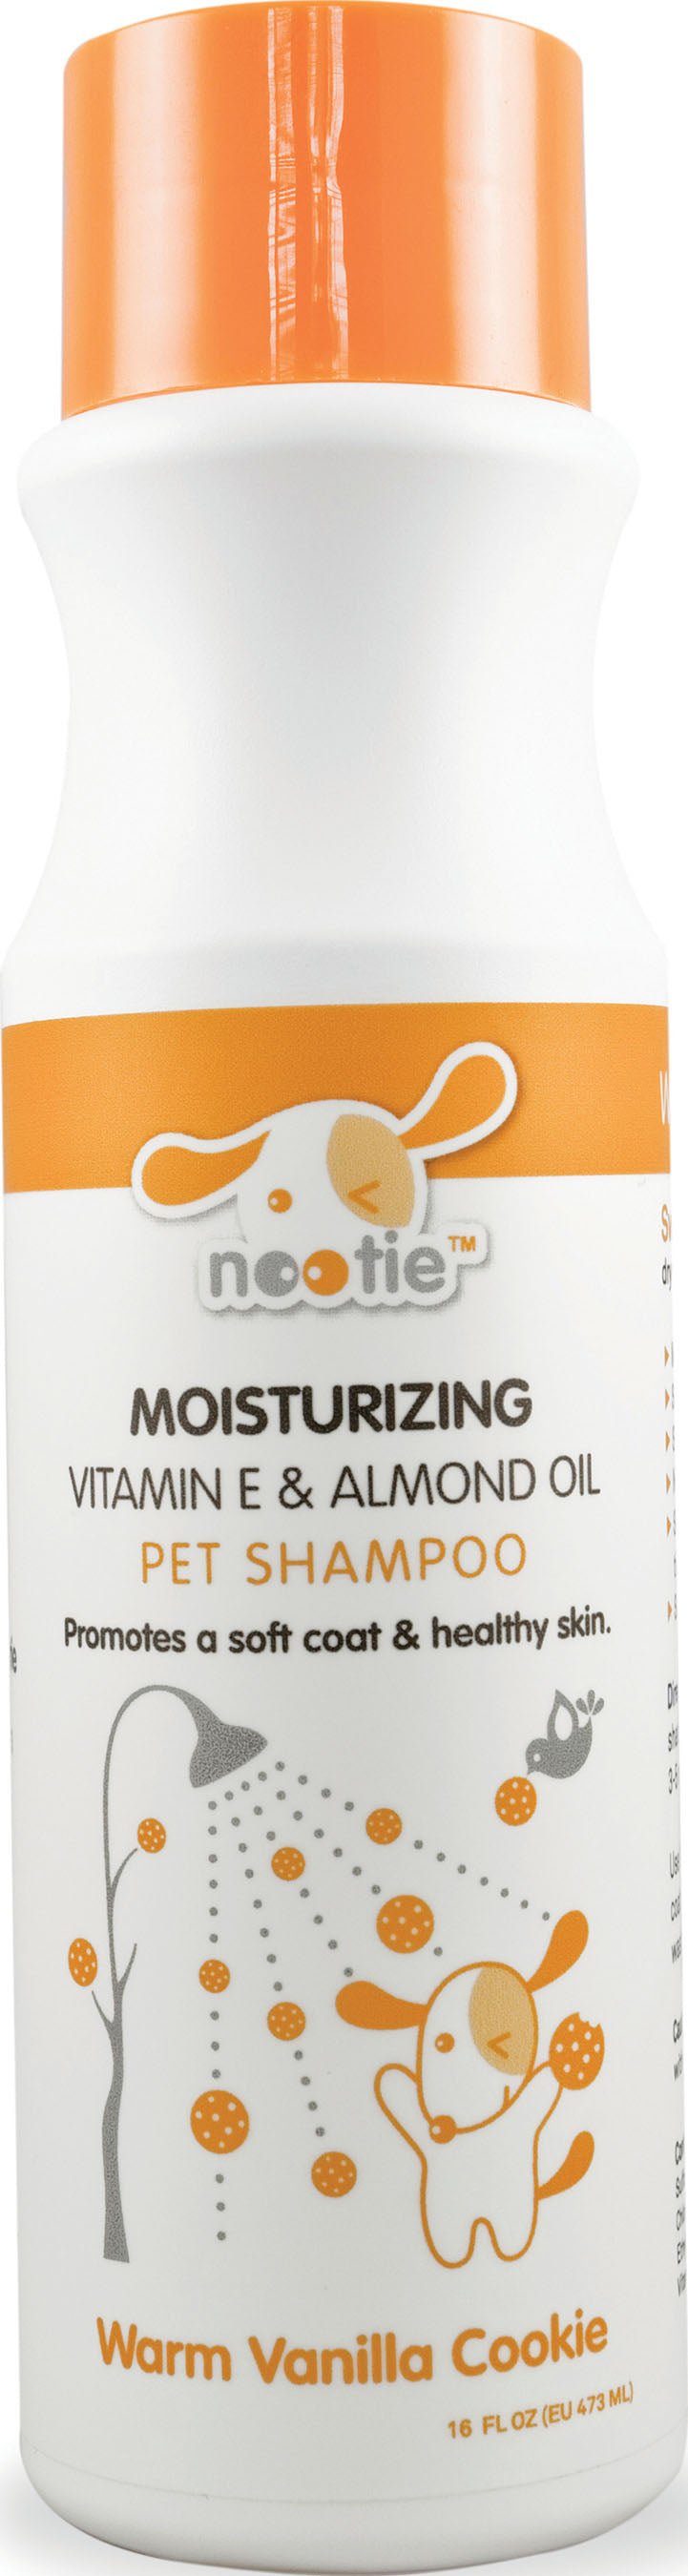 NOOTIE MOISTURIZING VITAMIN E & ALMOND OIL PET SHAMPOO